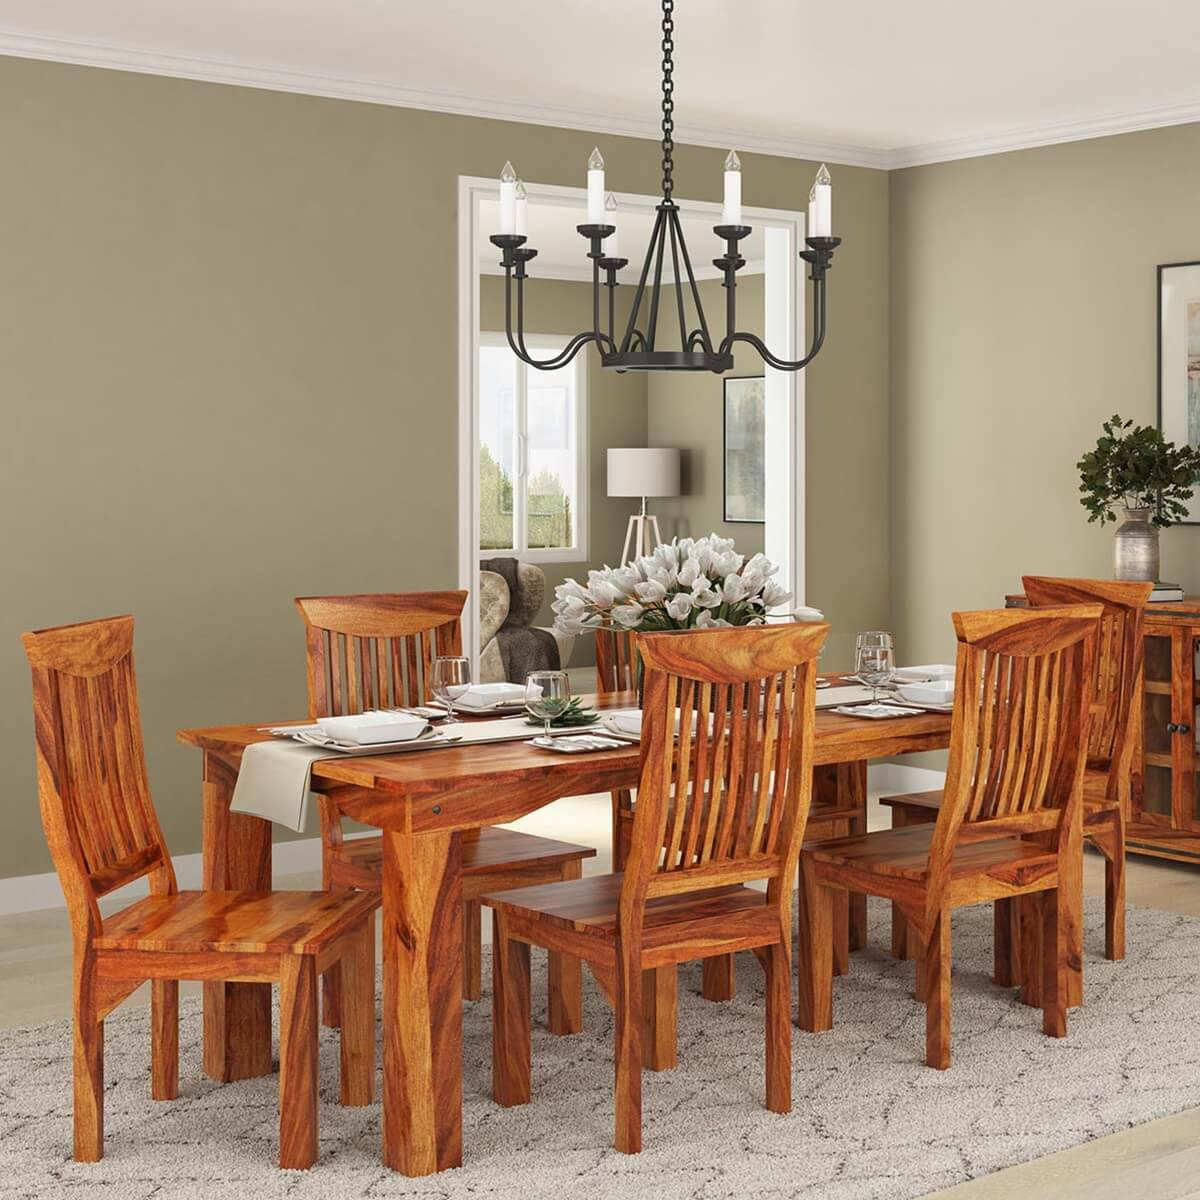 Idaho modern rustic solid wood dining table chair set for Solid wood dining table sets